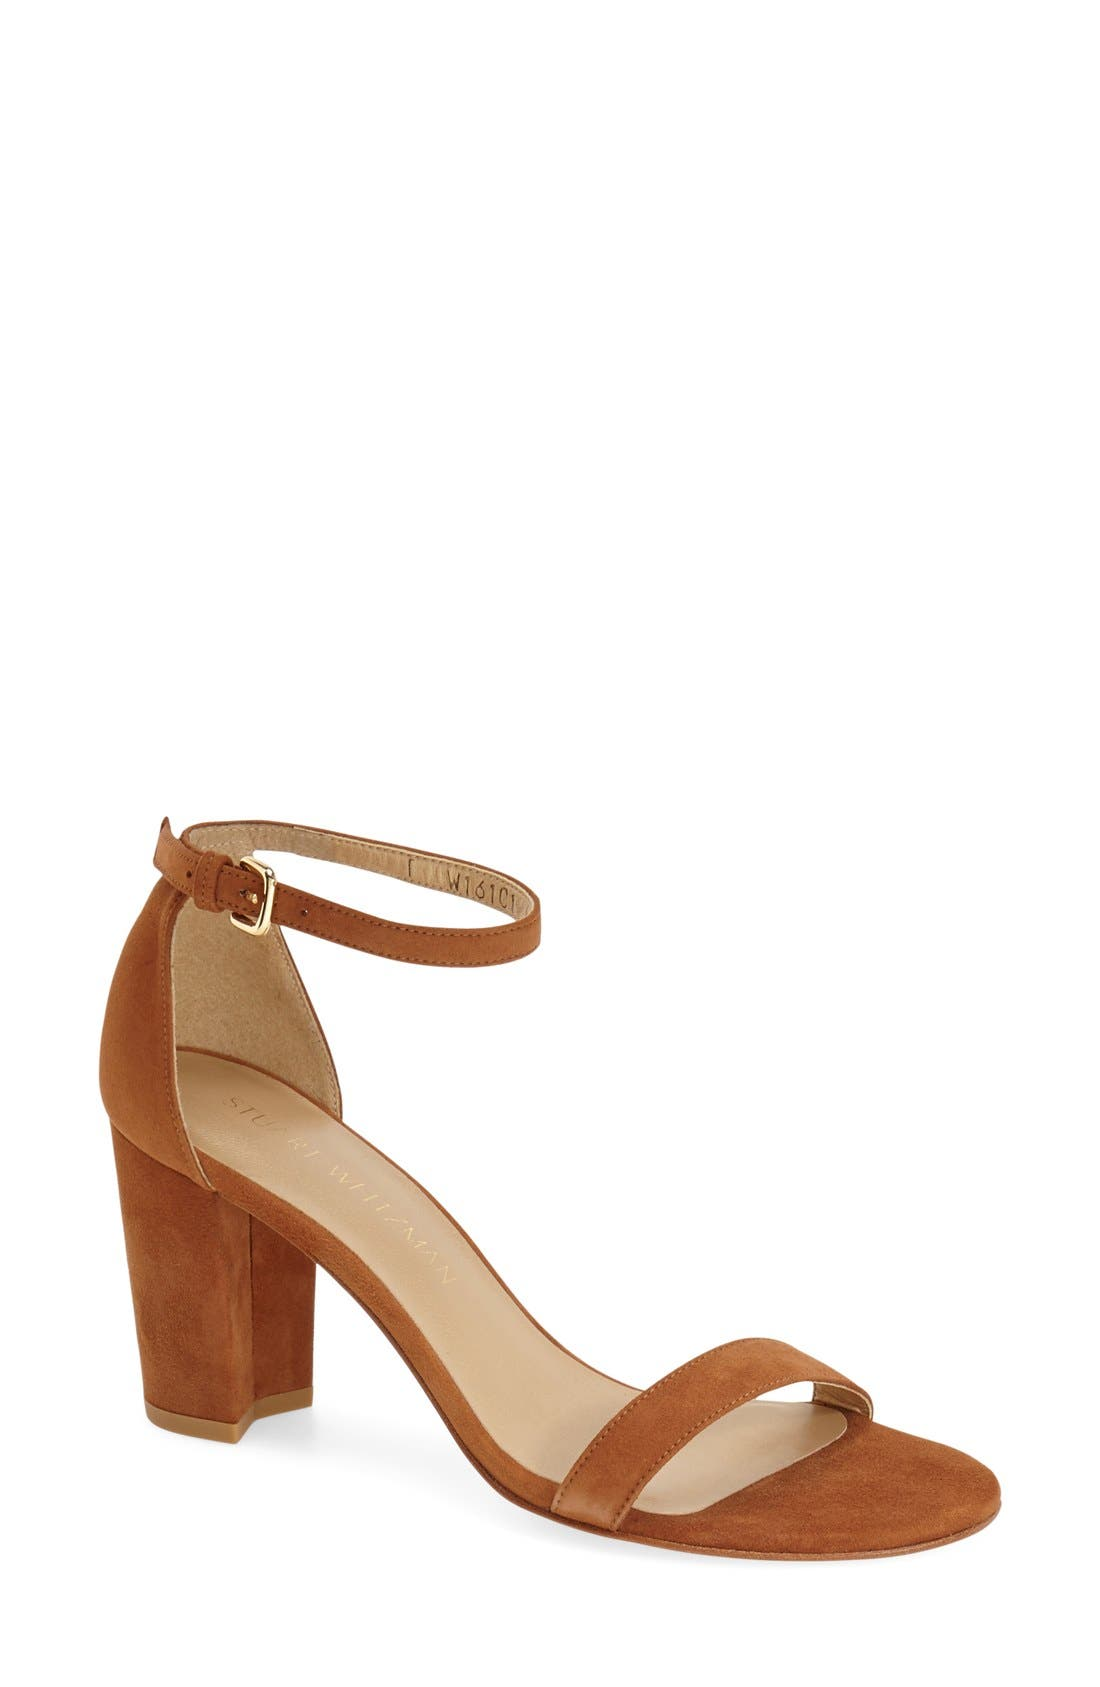 NearlyNude Ankle Strap Sandal,                             Main thumbnail 17, color,